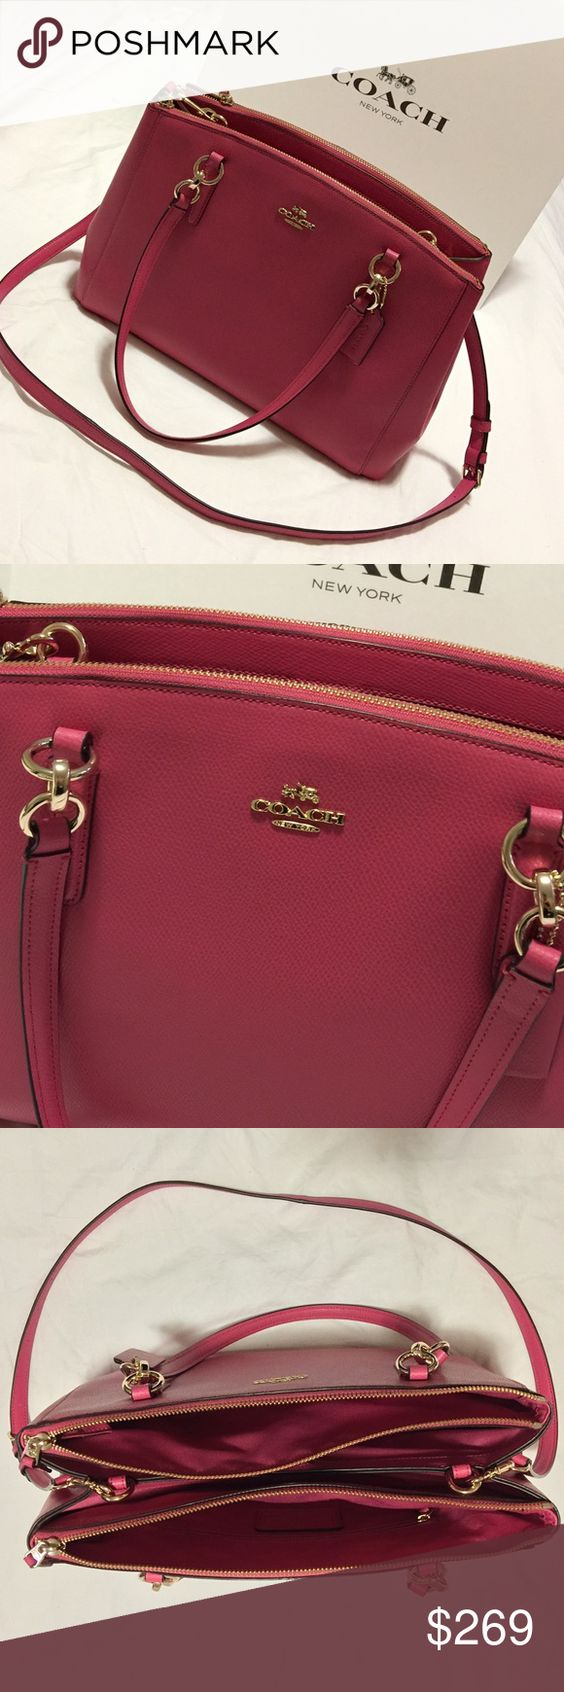 NWT Coach Christie Caryall Bag In Dahlia Pink NWT Coach Caryall bag with removable strap . This Beautiful Leather features 2 lg Zippered Compartments and 2 large open compartments with magnetic closure . Plenty of space for all of your items, can be worn on your arm or across your body. This gorgeous bag comes in Pink leather accented with Gold tone hardware✨ Please use Poshmark Etiquette when making comments or offers  Ty Coach Bags Satchels